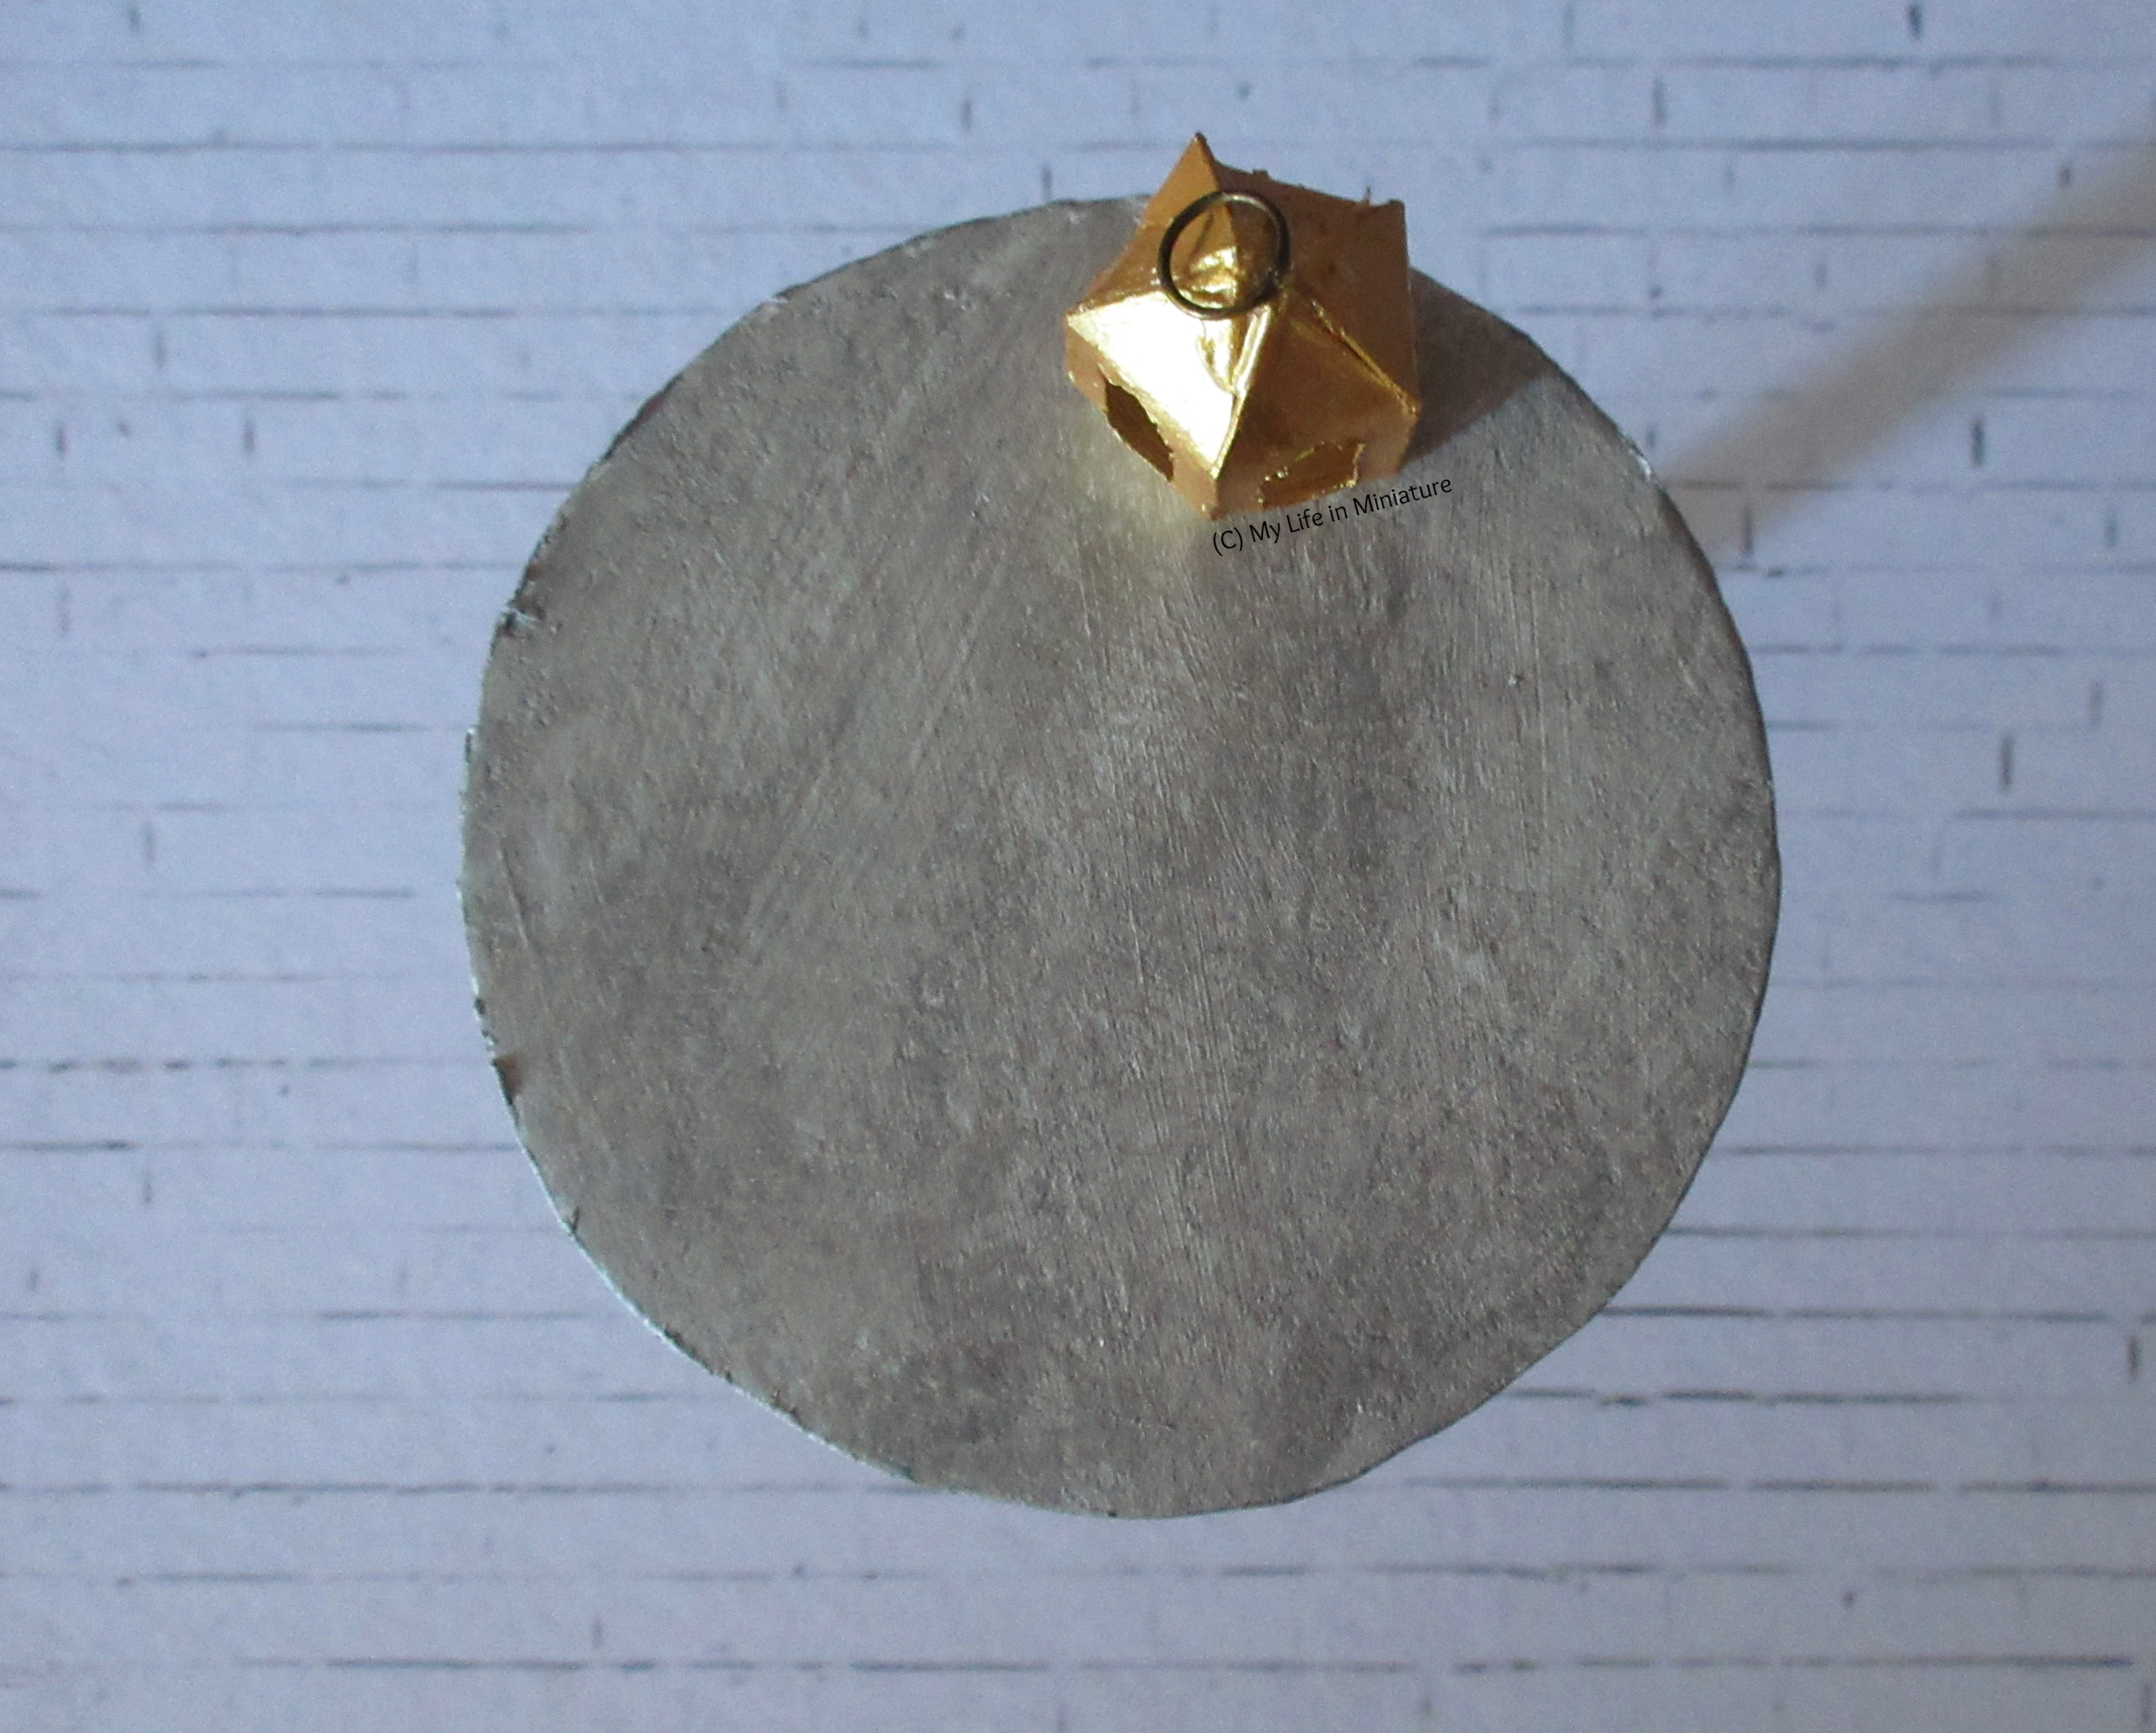 The silver table is photographed from above, over a white brick background. On it is the pentagonal gold lantern. The top is textured.